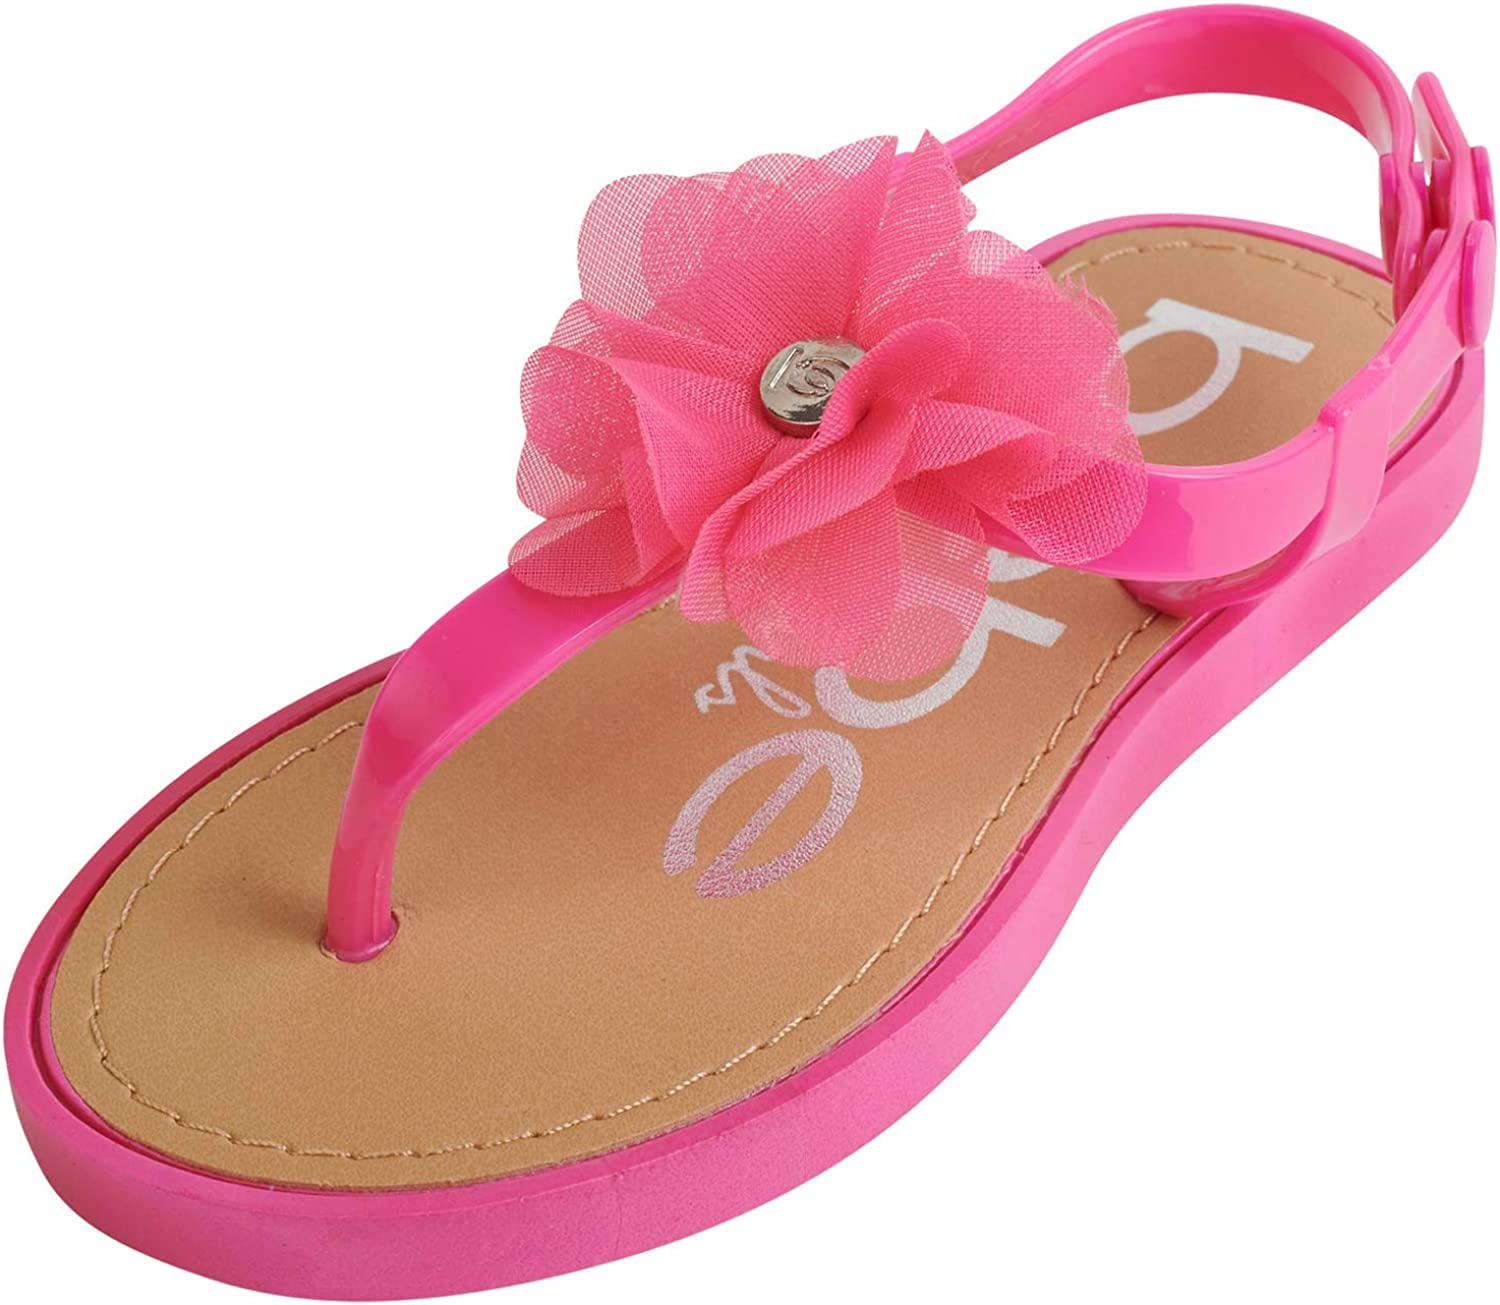 Bebe Brand Cheap Sale Venue Girls' Thong Sandals with Toddler Flowers Little K Chiffon Trust